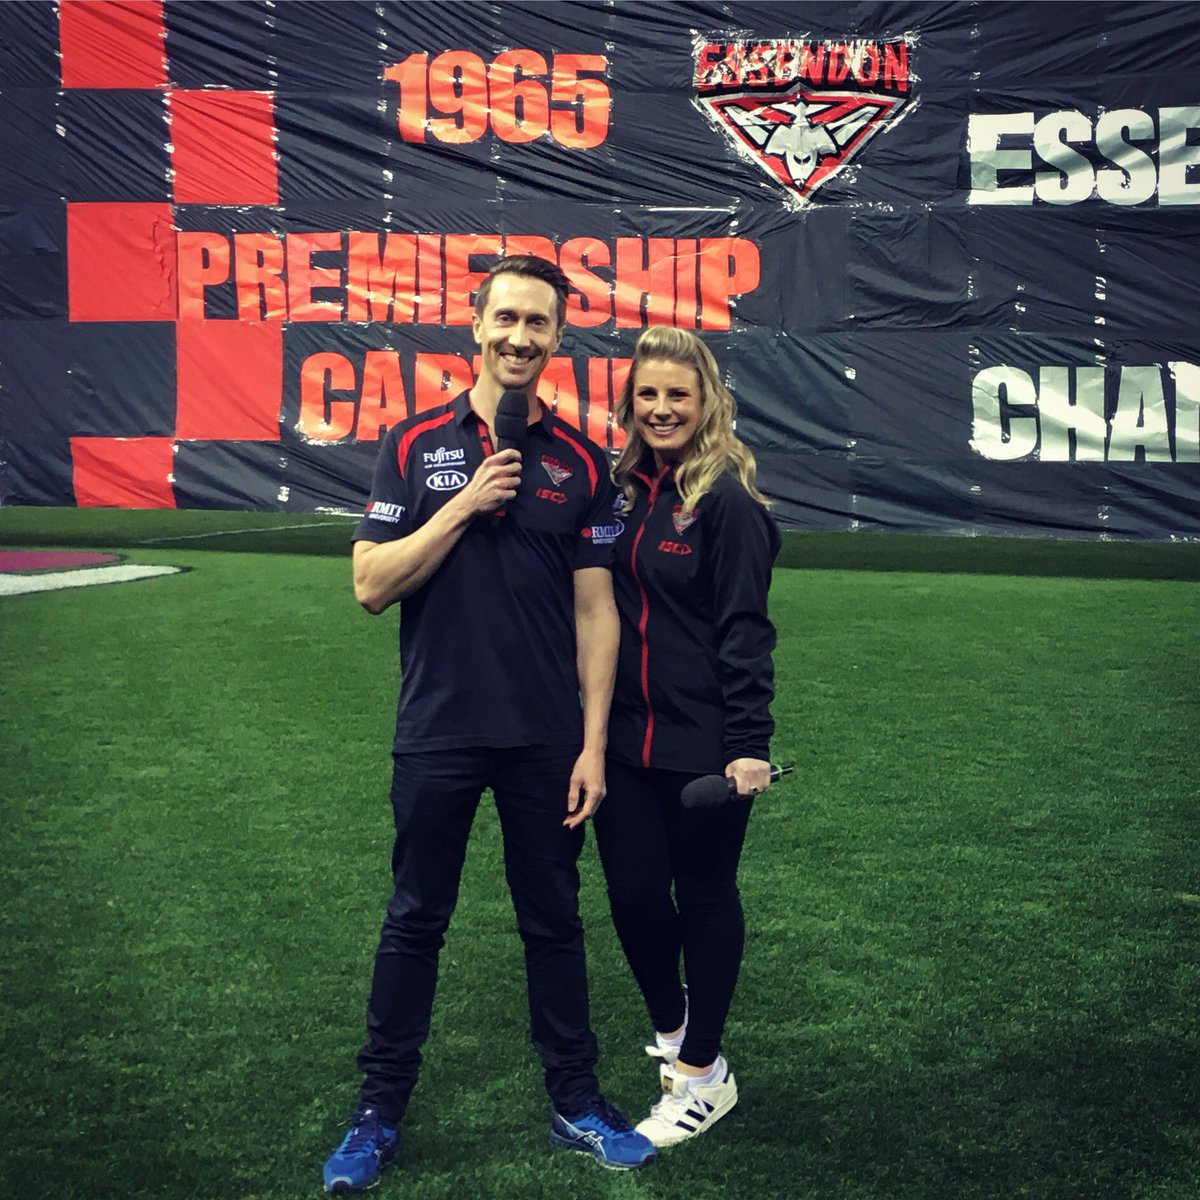 Last Home Game of the 2018 season - love working with this guy @colerintoul #EFC #Bombers #AFLDonsSaints @EssendonFC<br>http://pic.twitter.com/1iesqRlm62